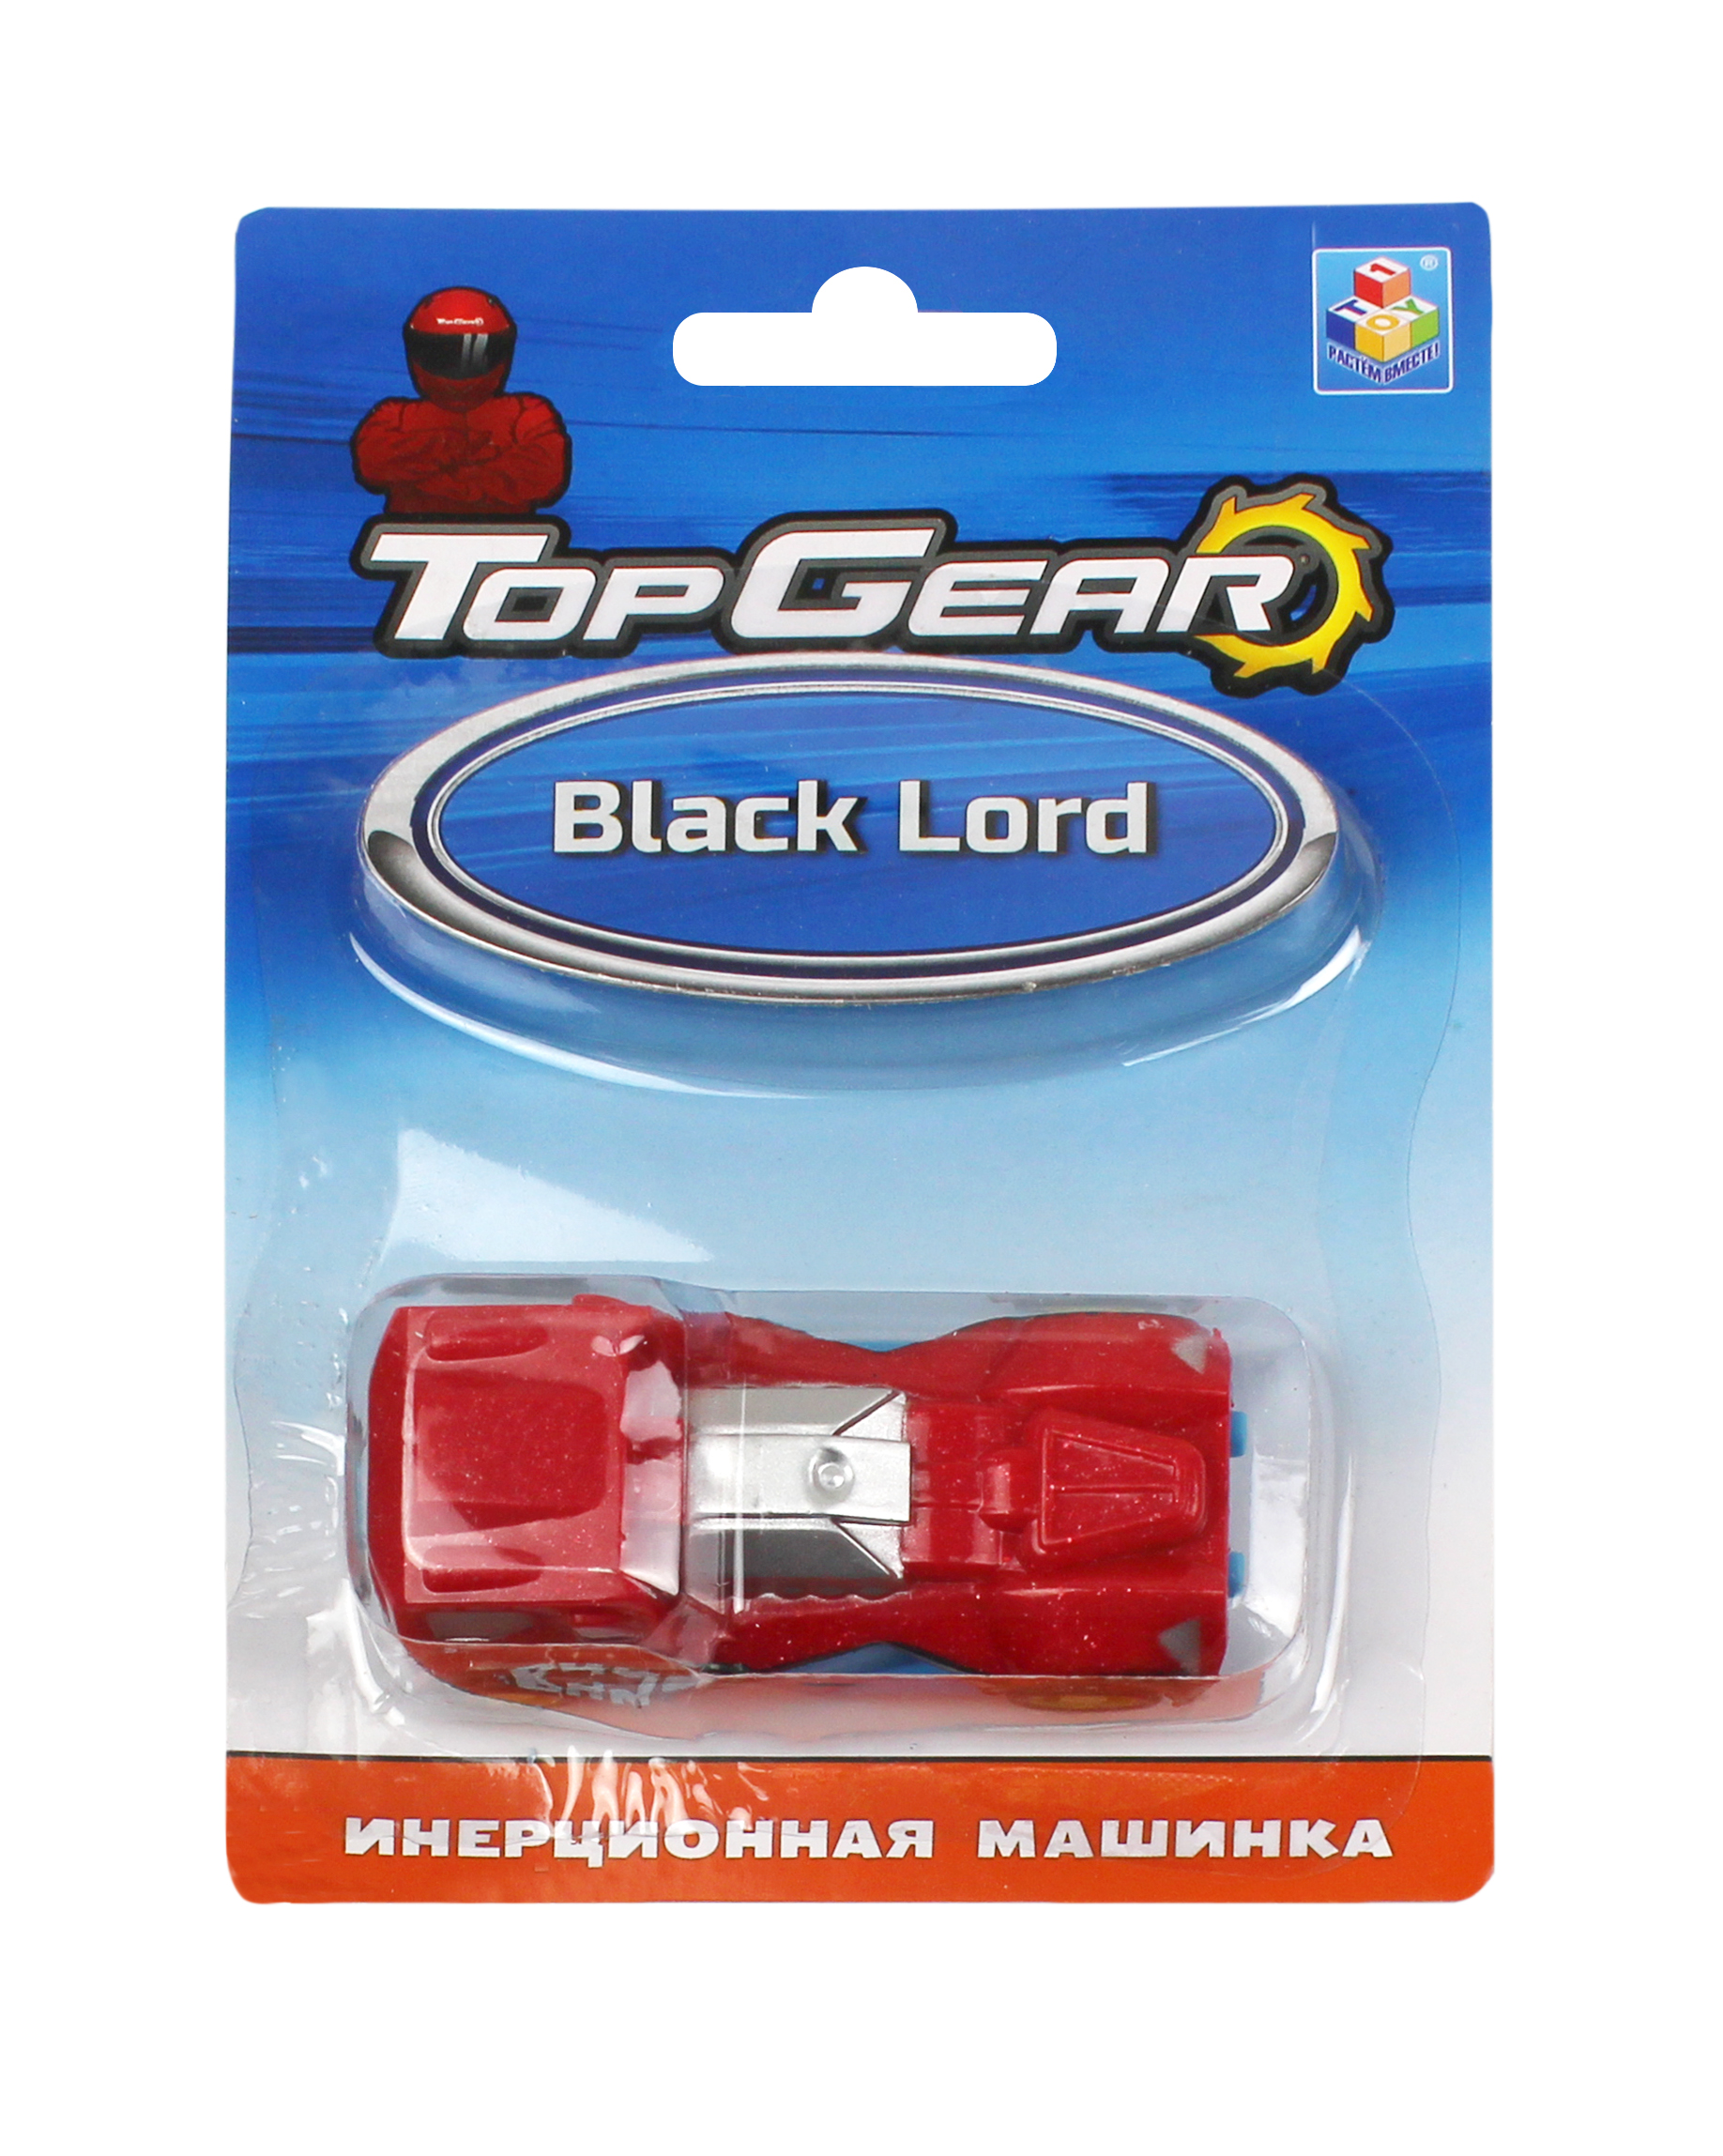 Машинка 1toy Top Gear-Black Lord Т10318 машинки и мотоциклы 1toy top gear black lord т10318